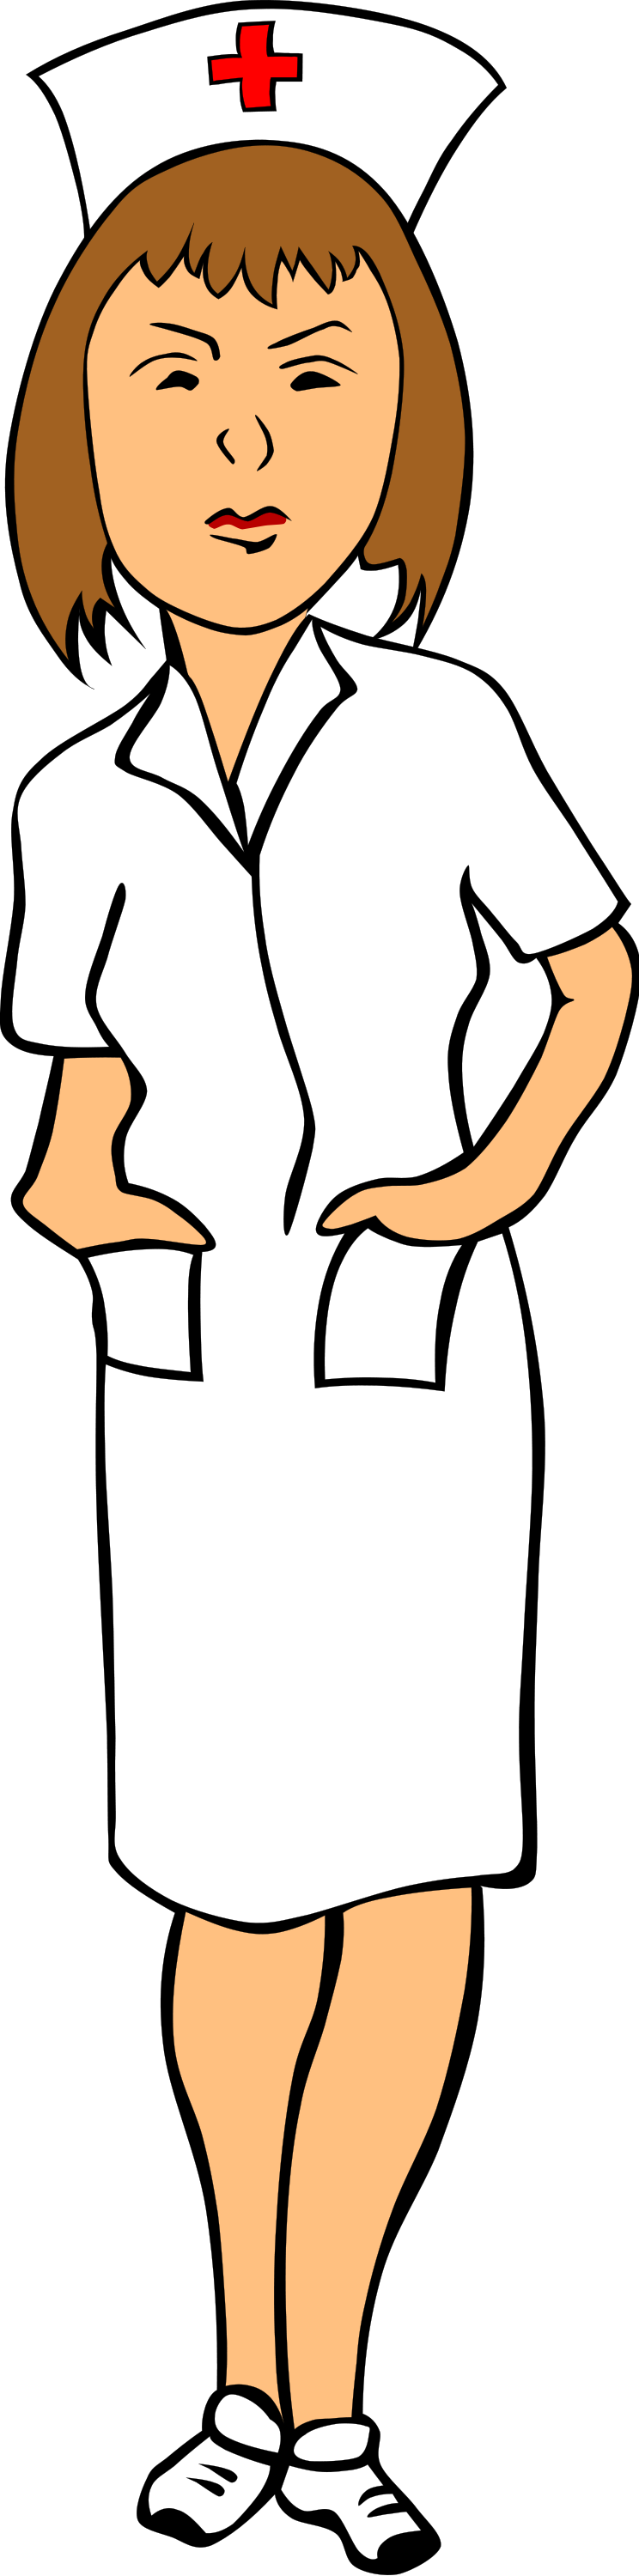 Illustration of a nurse with a transparent background.